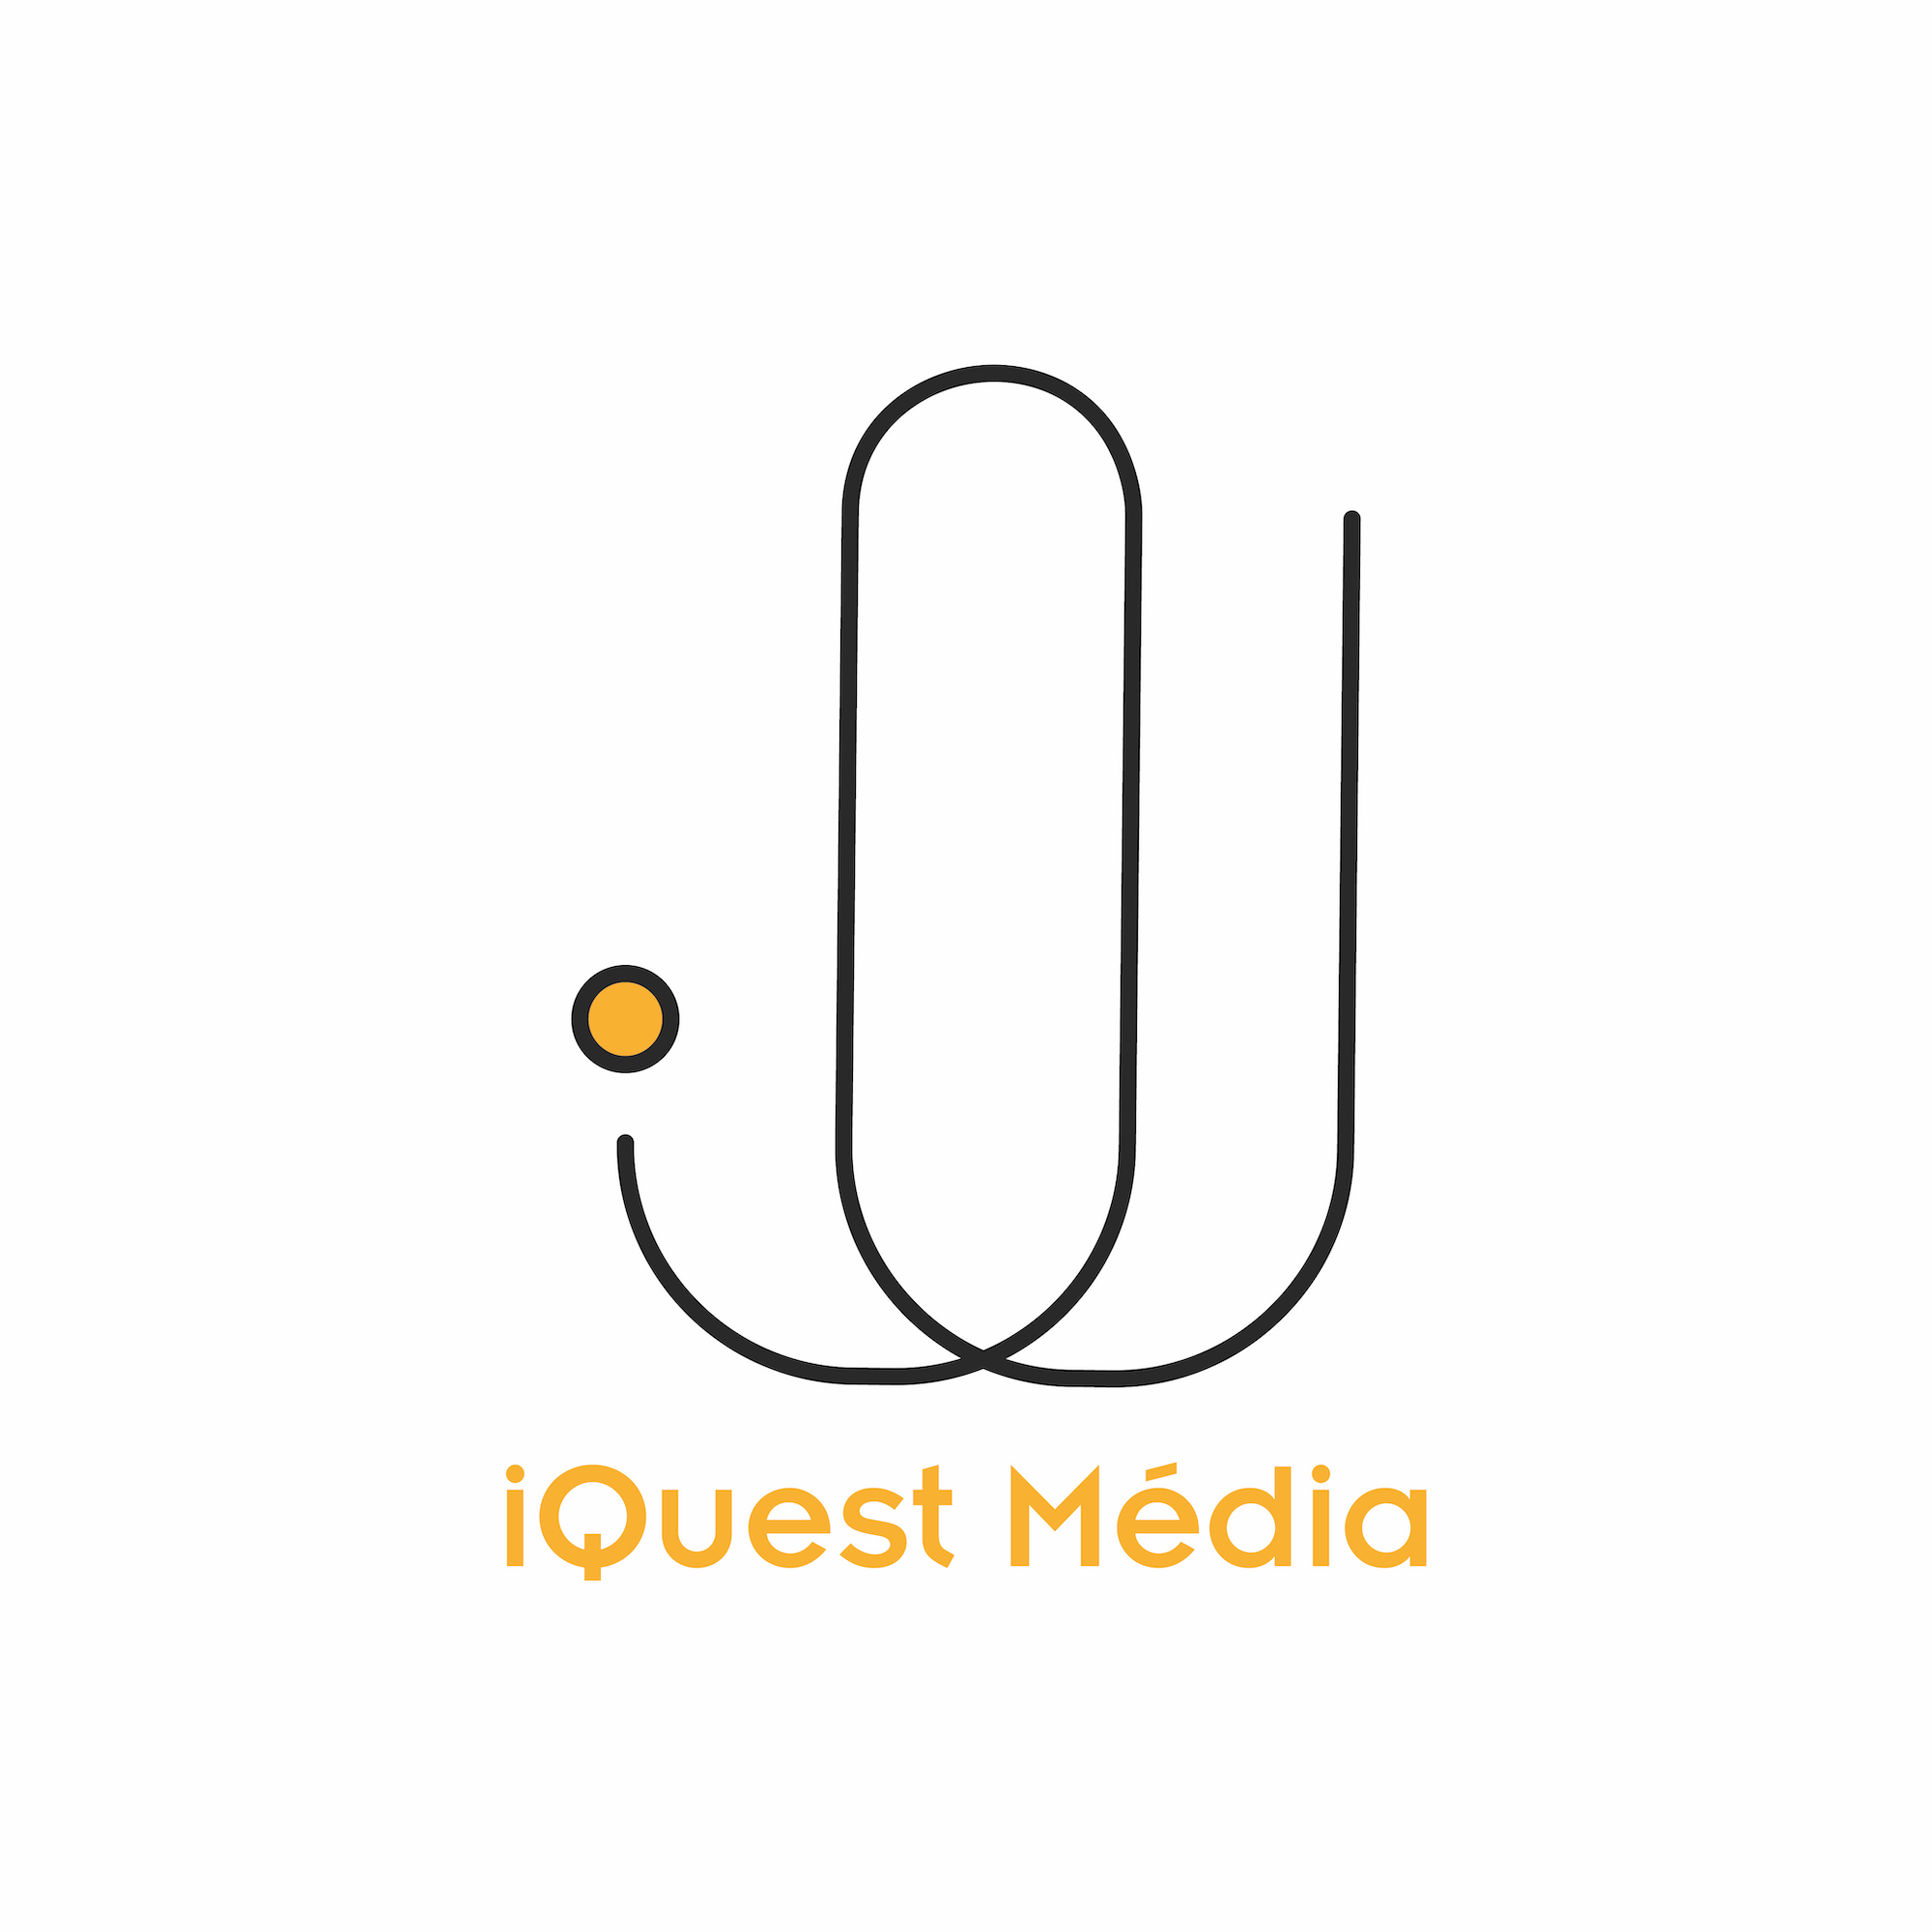 iQuest Media